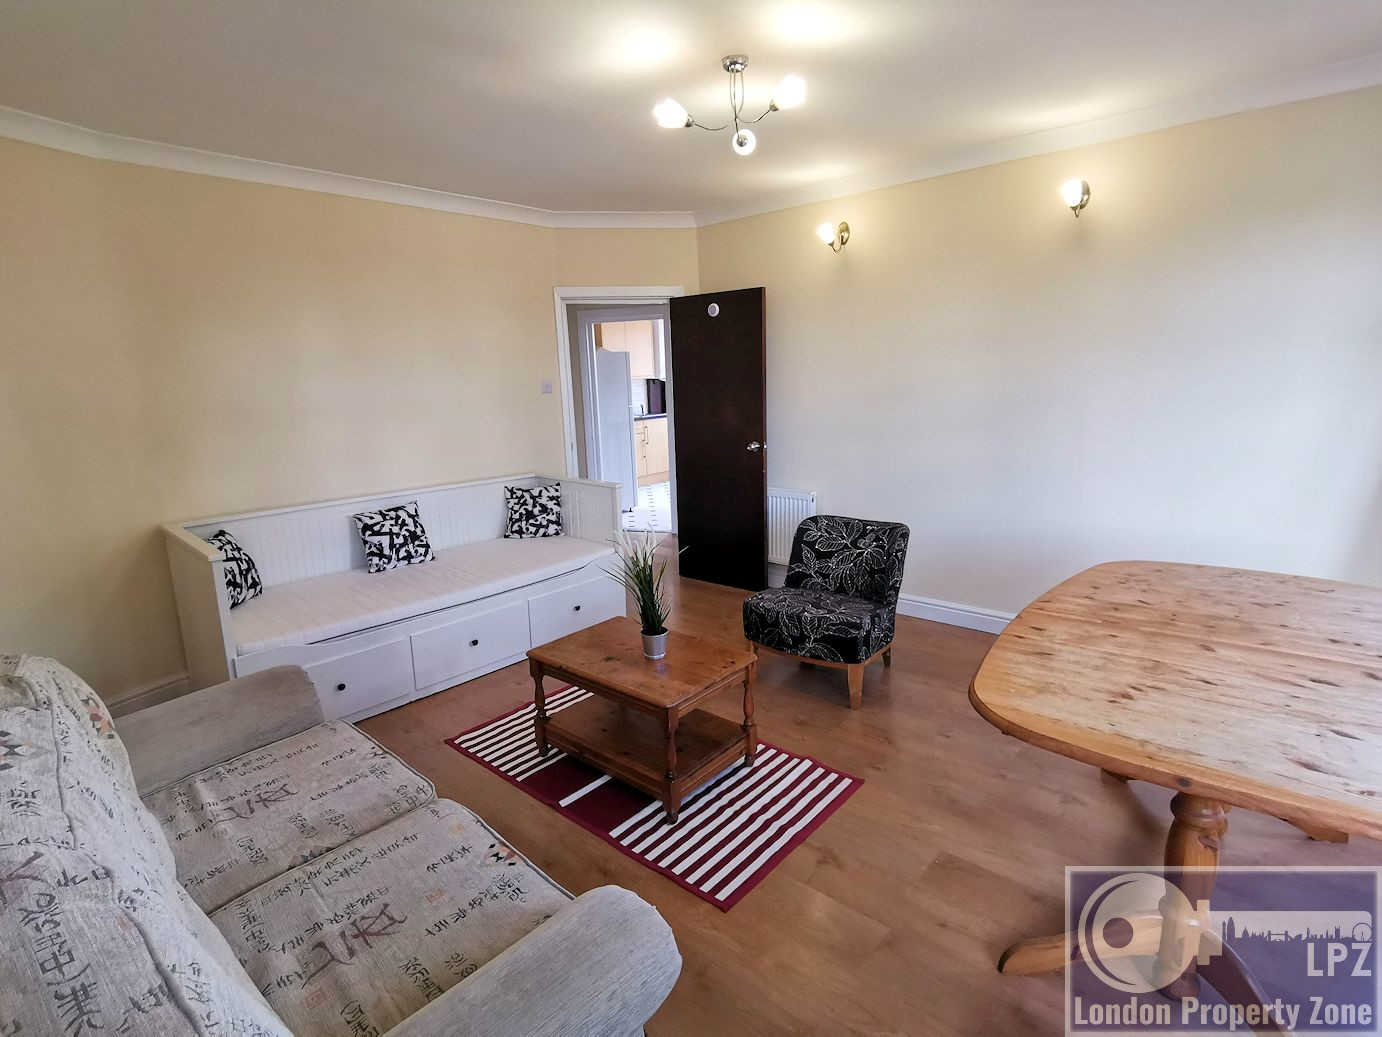 3 bed, 1st floor, flat for sale,in, Wakermans Hill Avenue, NW9, Rochester Court, Kingsbury, Esatte agents, London Property Zone, Kingsbury Esatte agents,